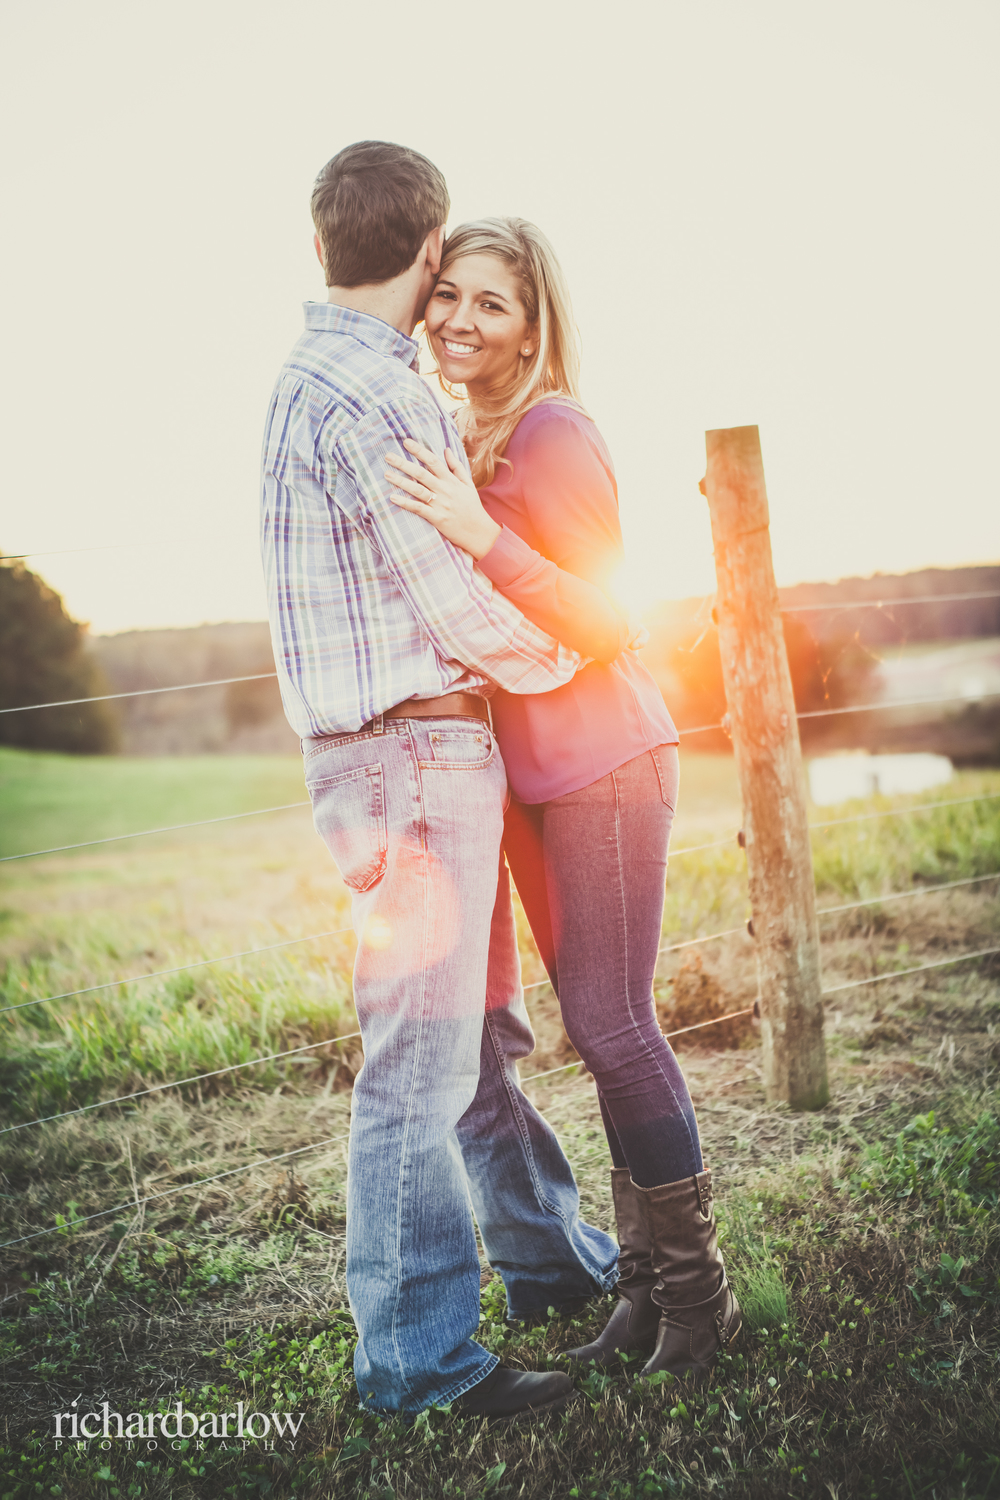 richard barlow photography - Garrett and Heather Engagement Session Raleigh-22.jpg